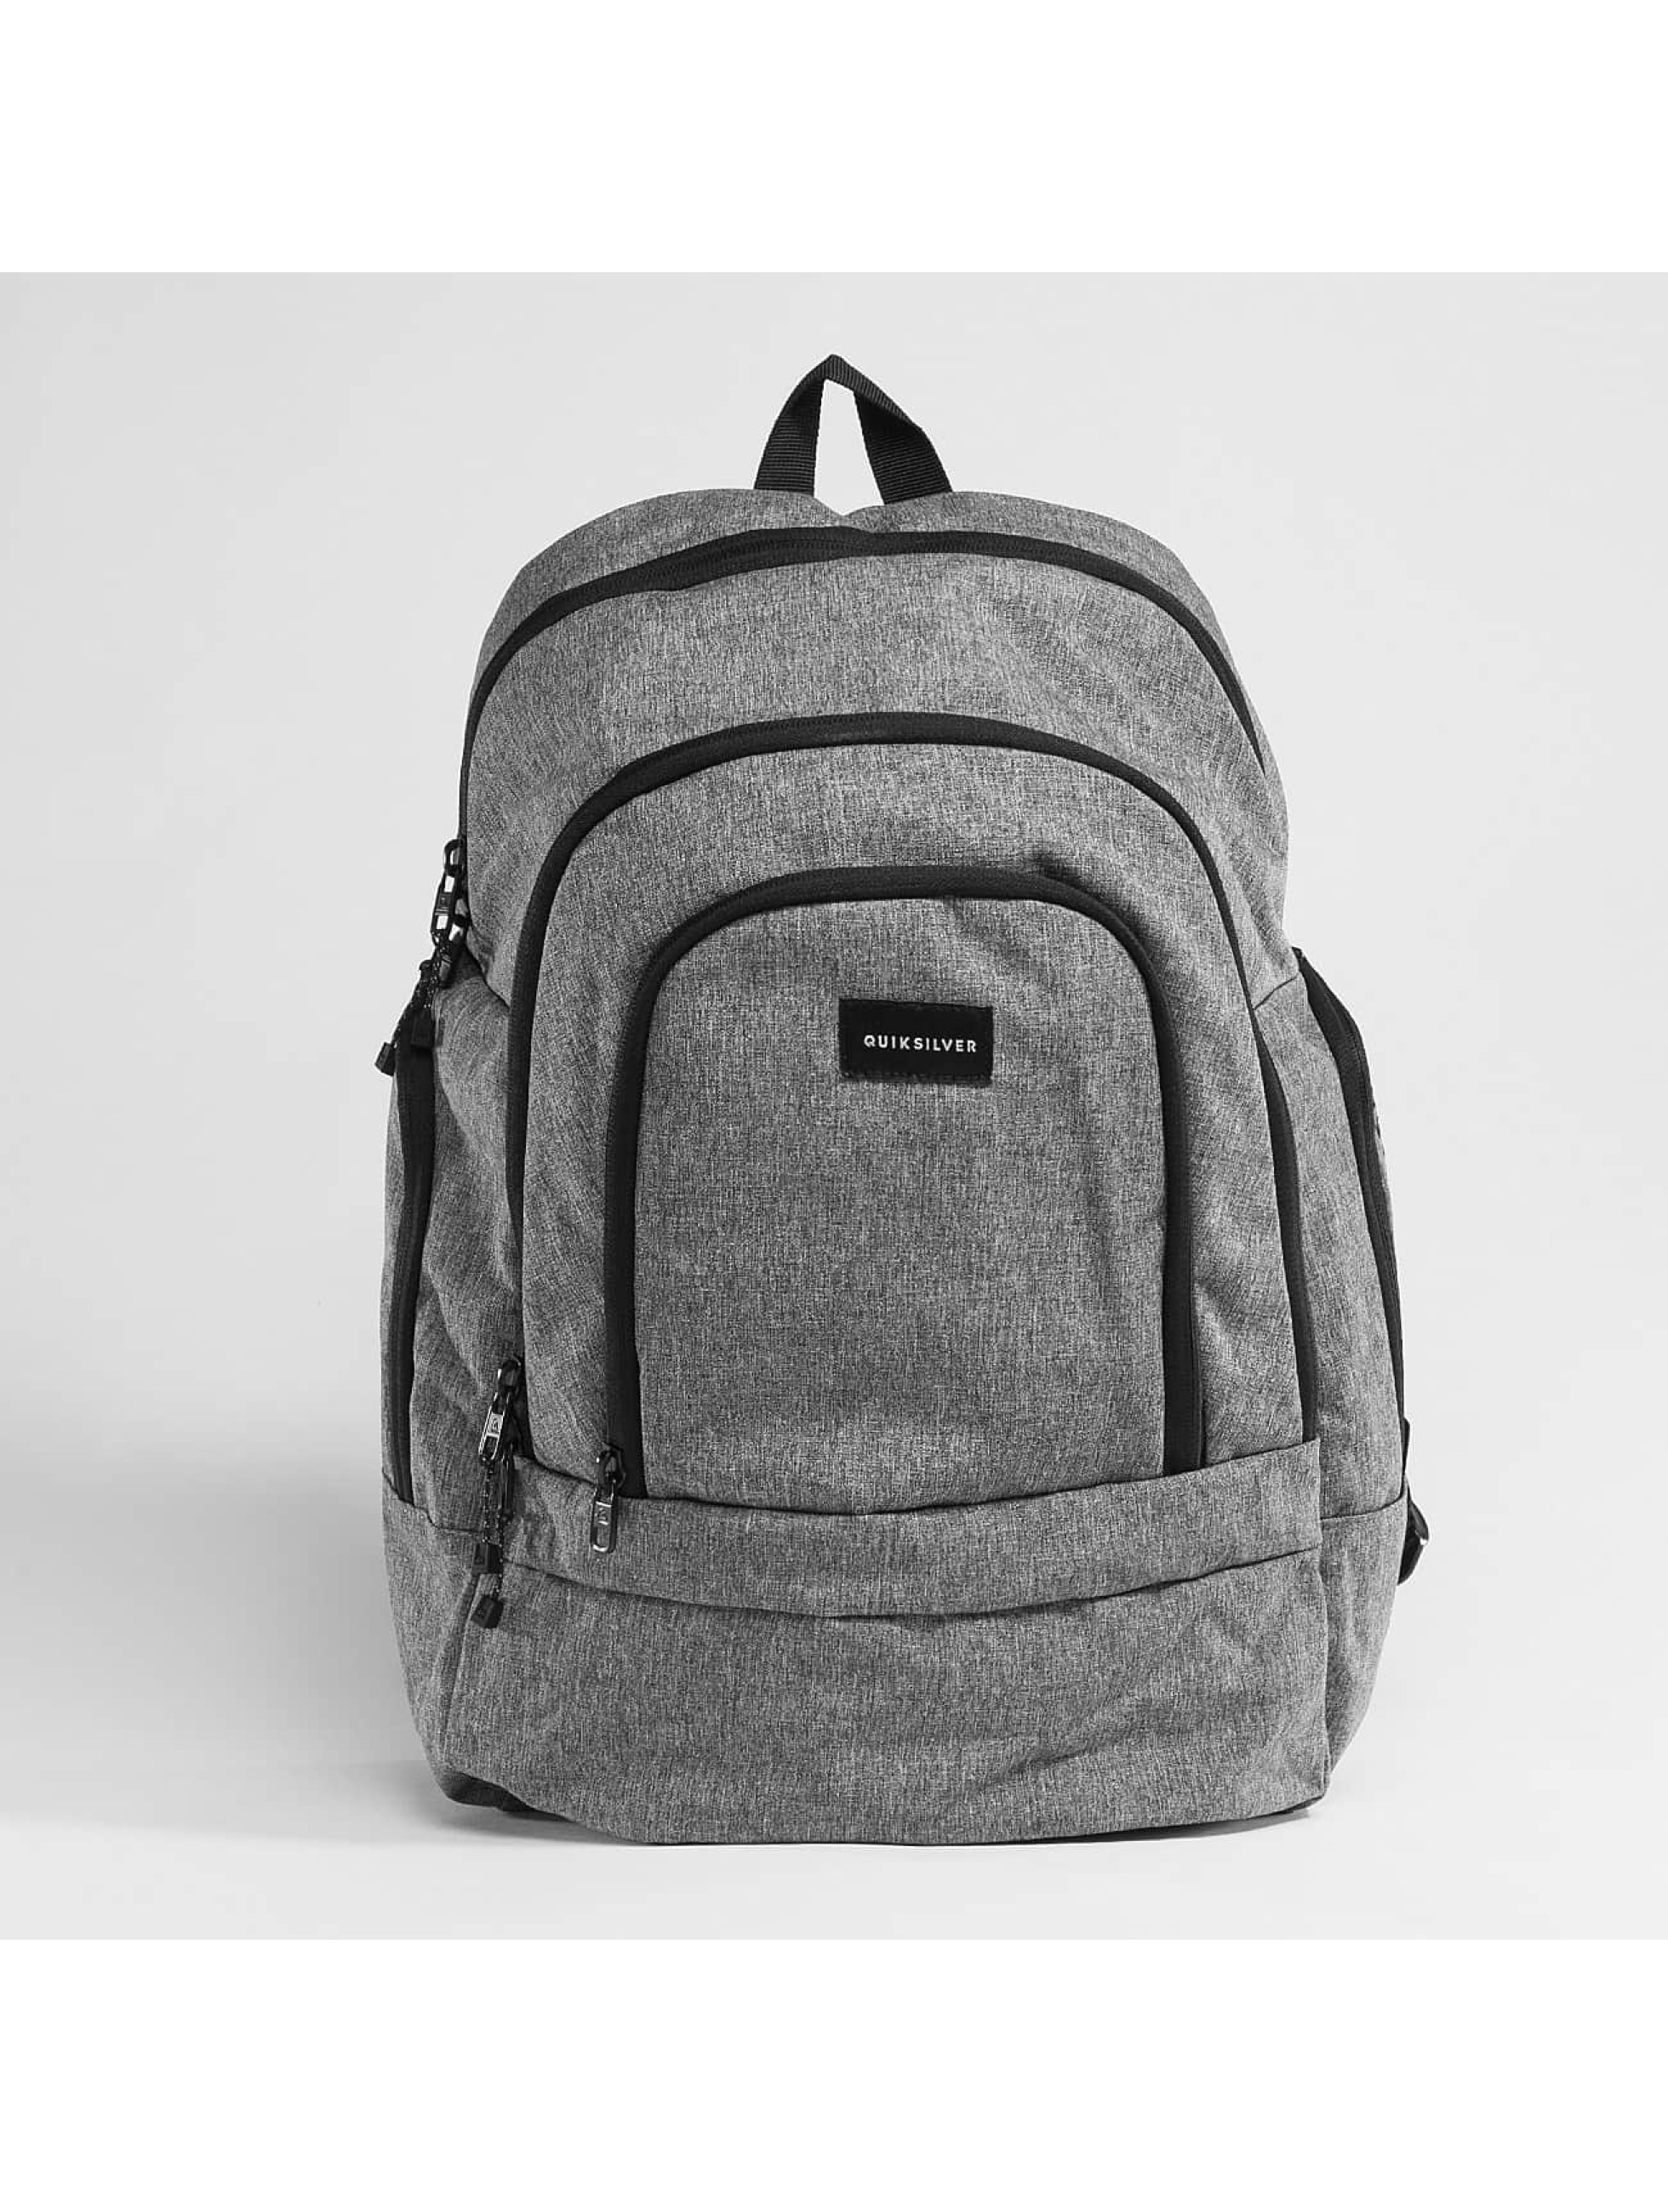 Quiksilver Backpack 1969 Special gray